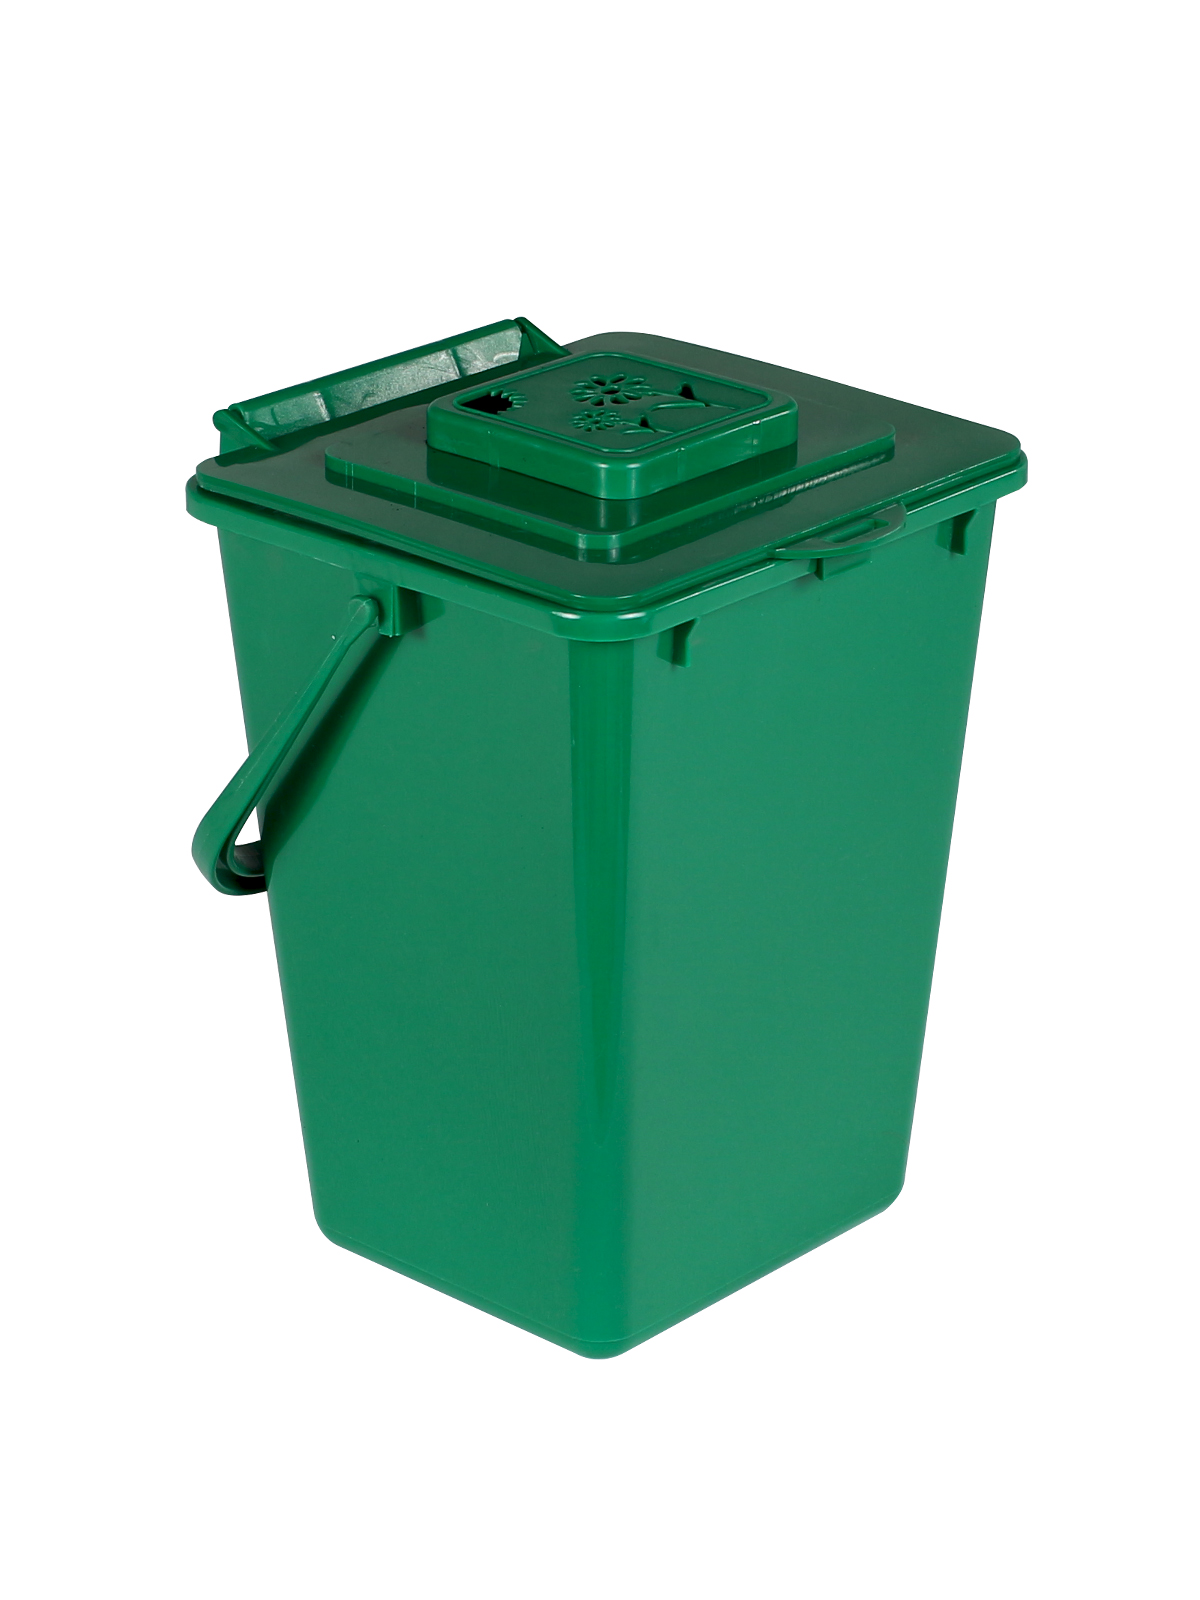 KITCHEN COMPOSTER   KC2000   VENTED LID, FLOWER CAGE W/FILTER   COMPOST  GREEN